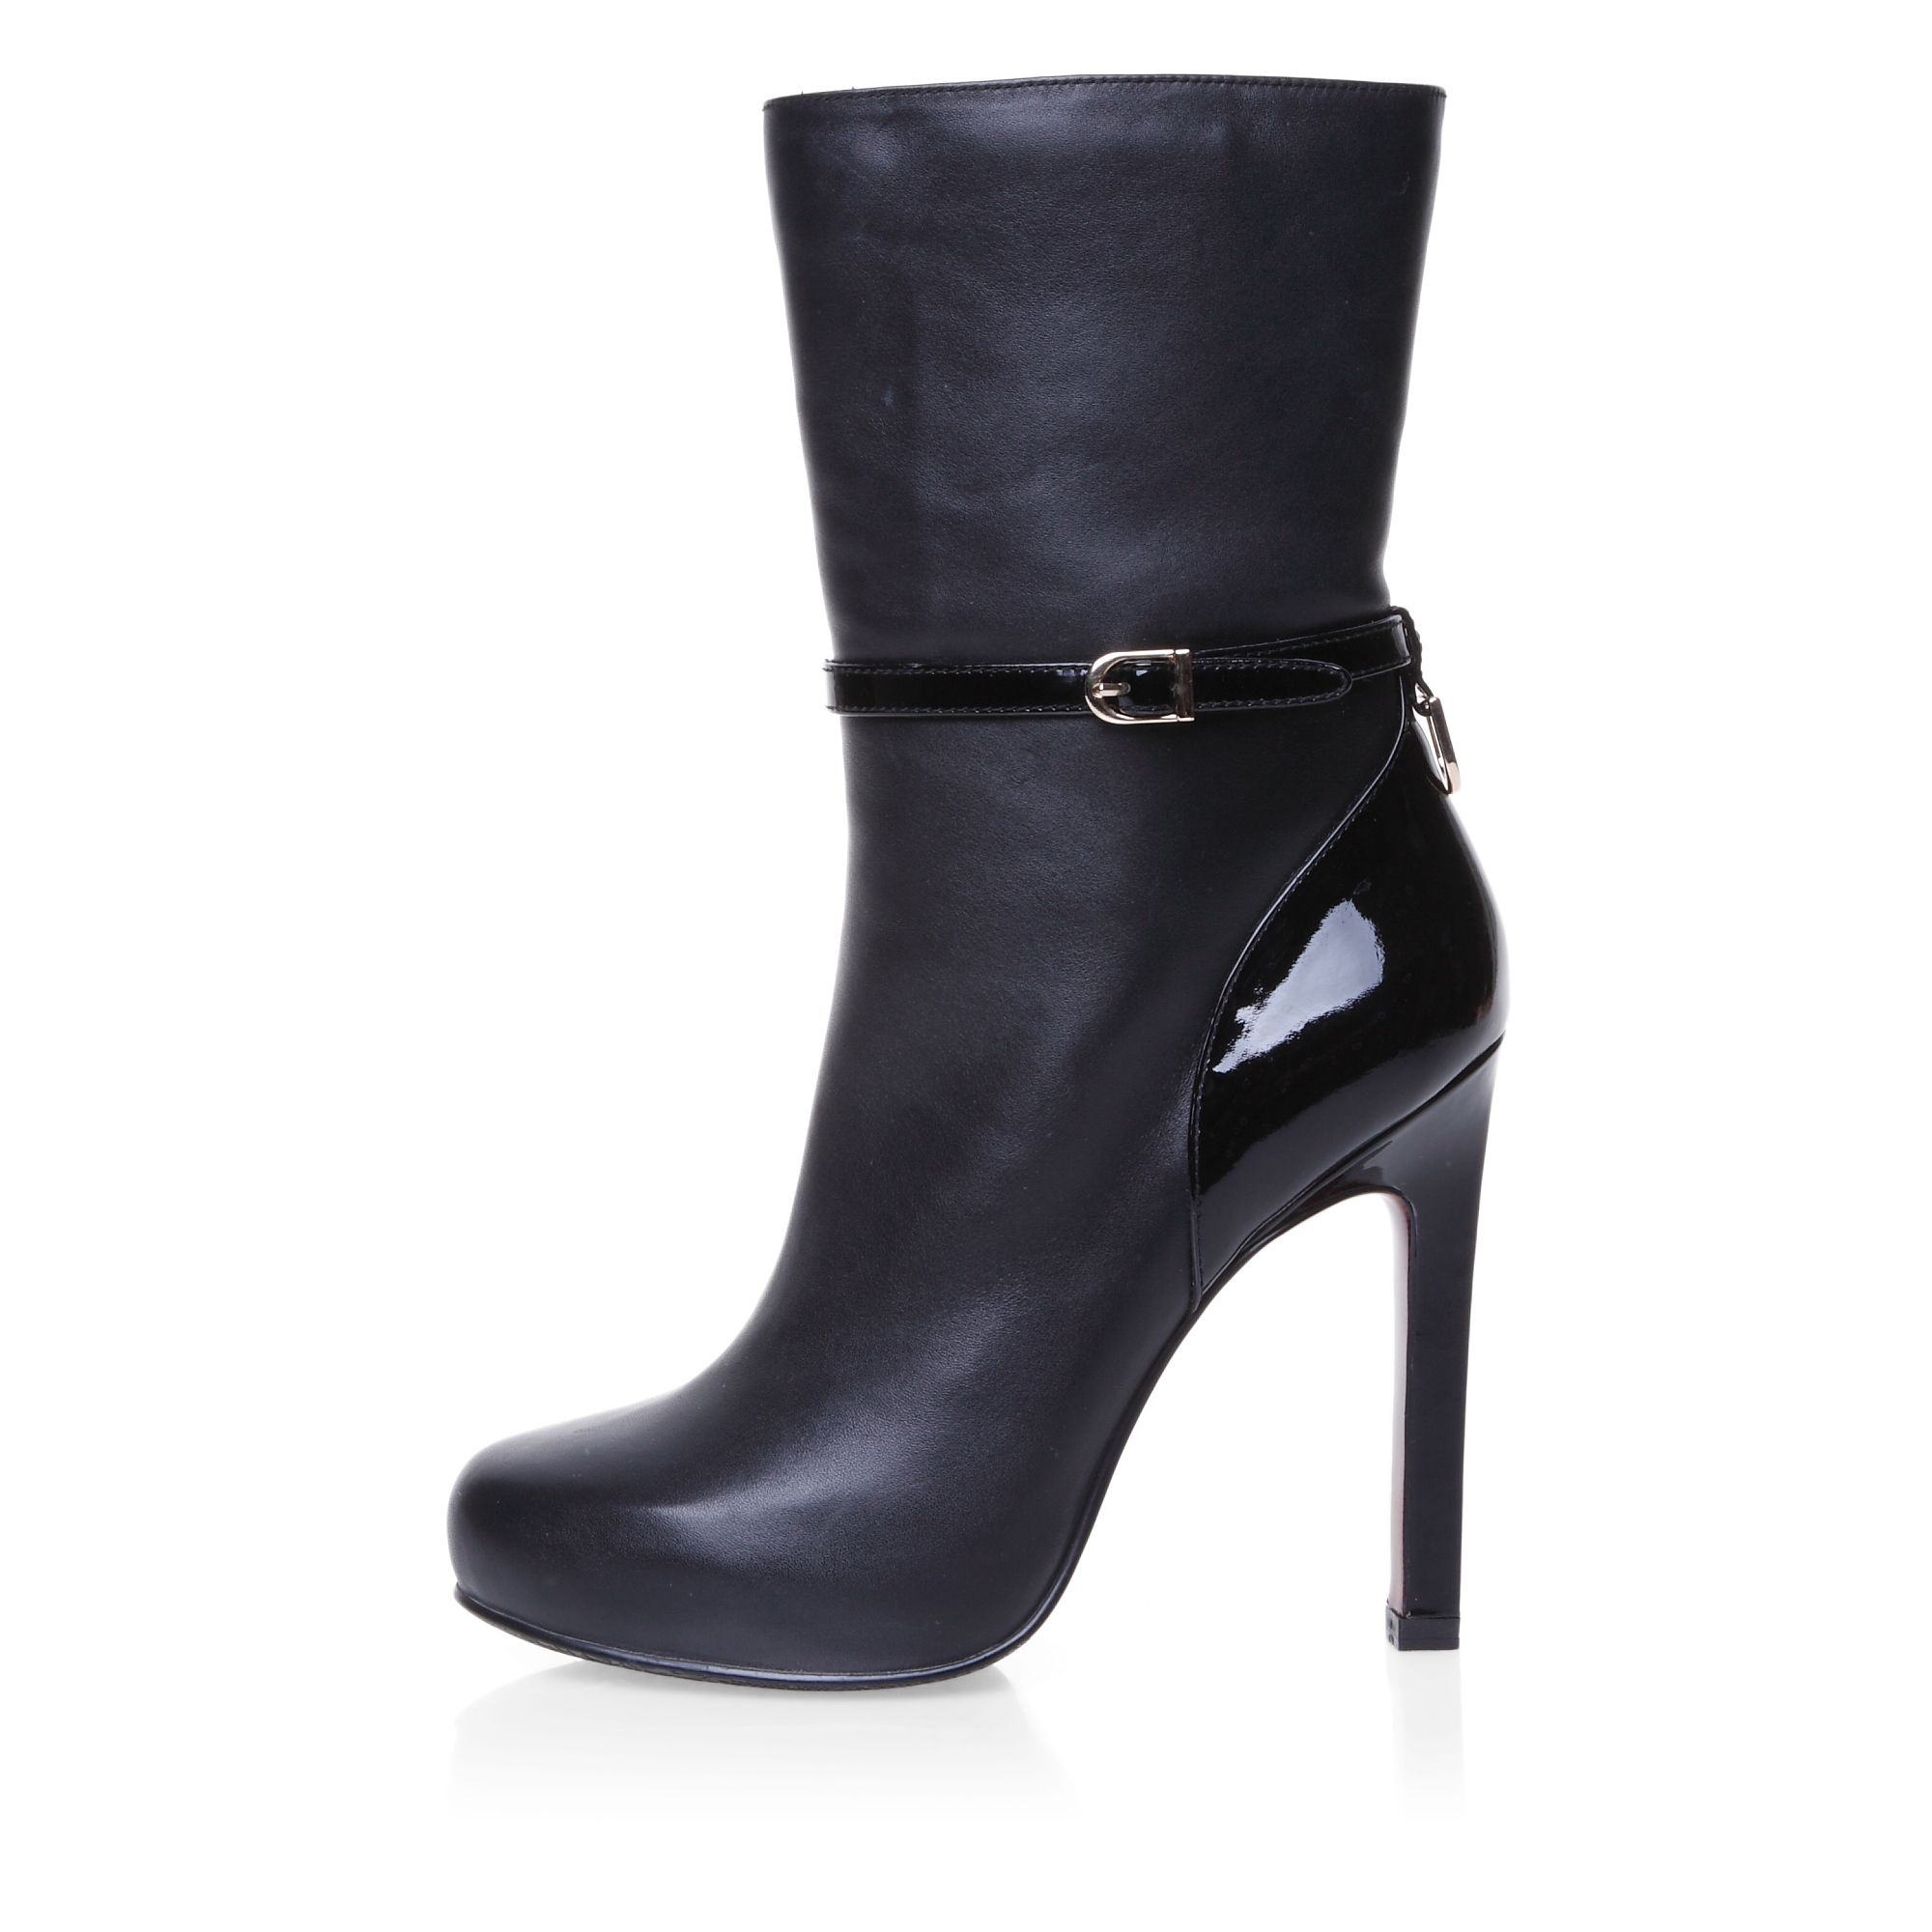 High heeled elegant buckle detailed boots